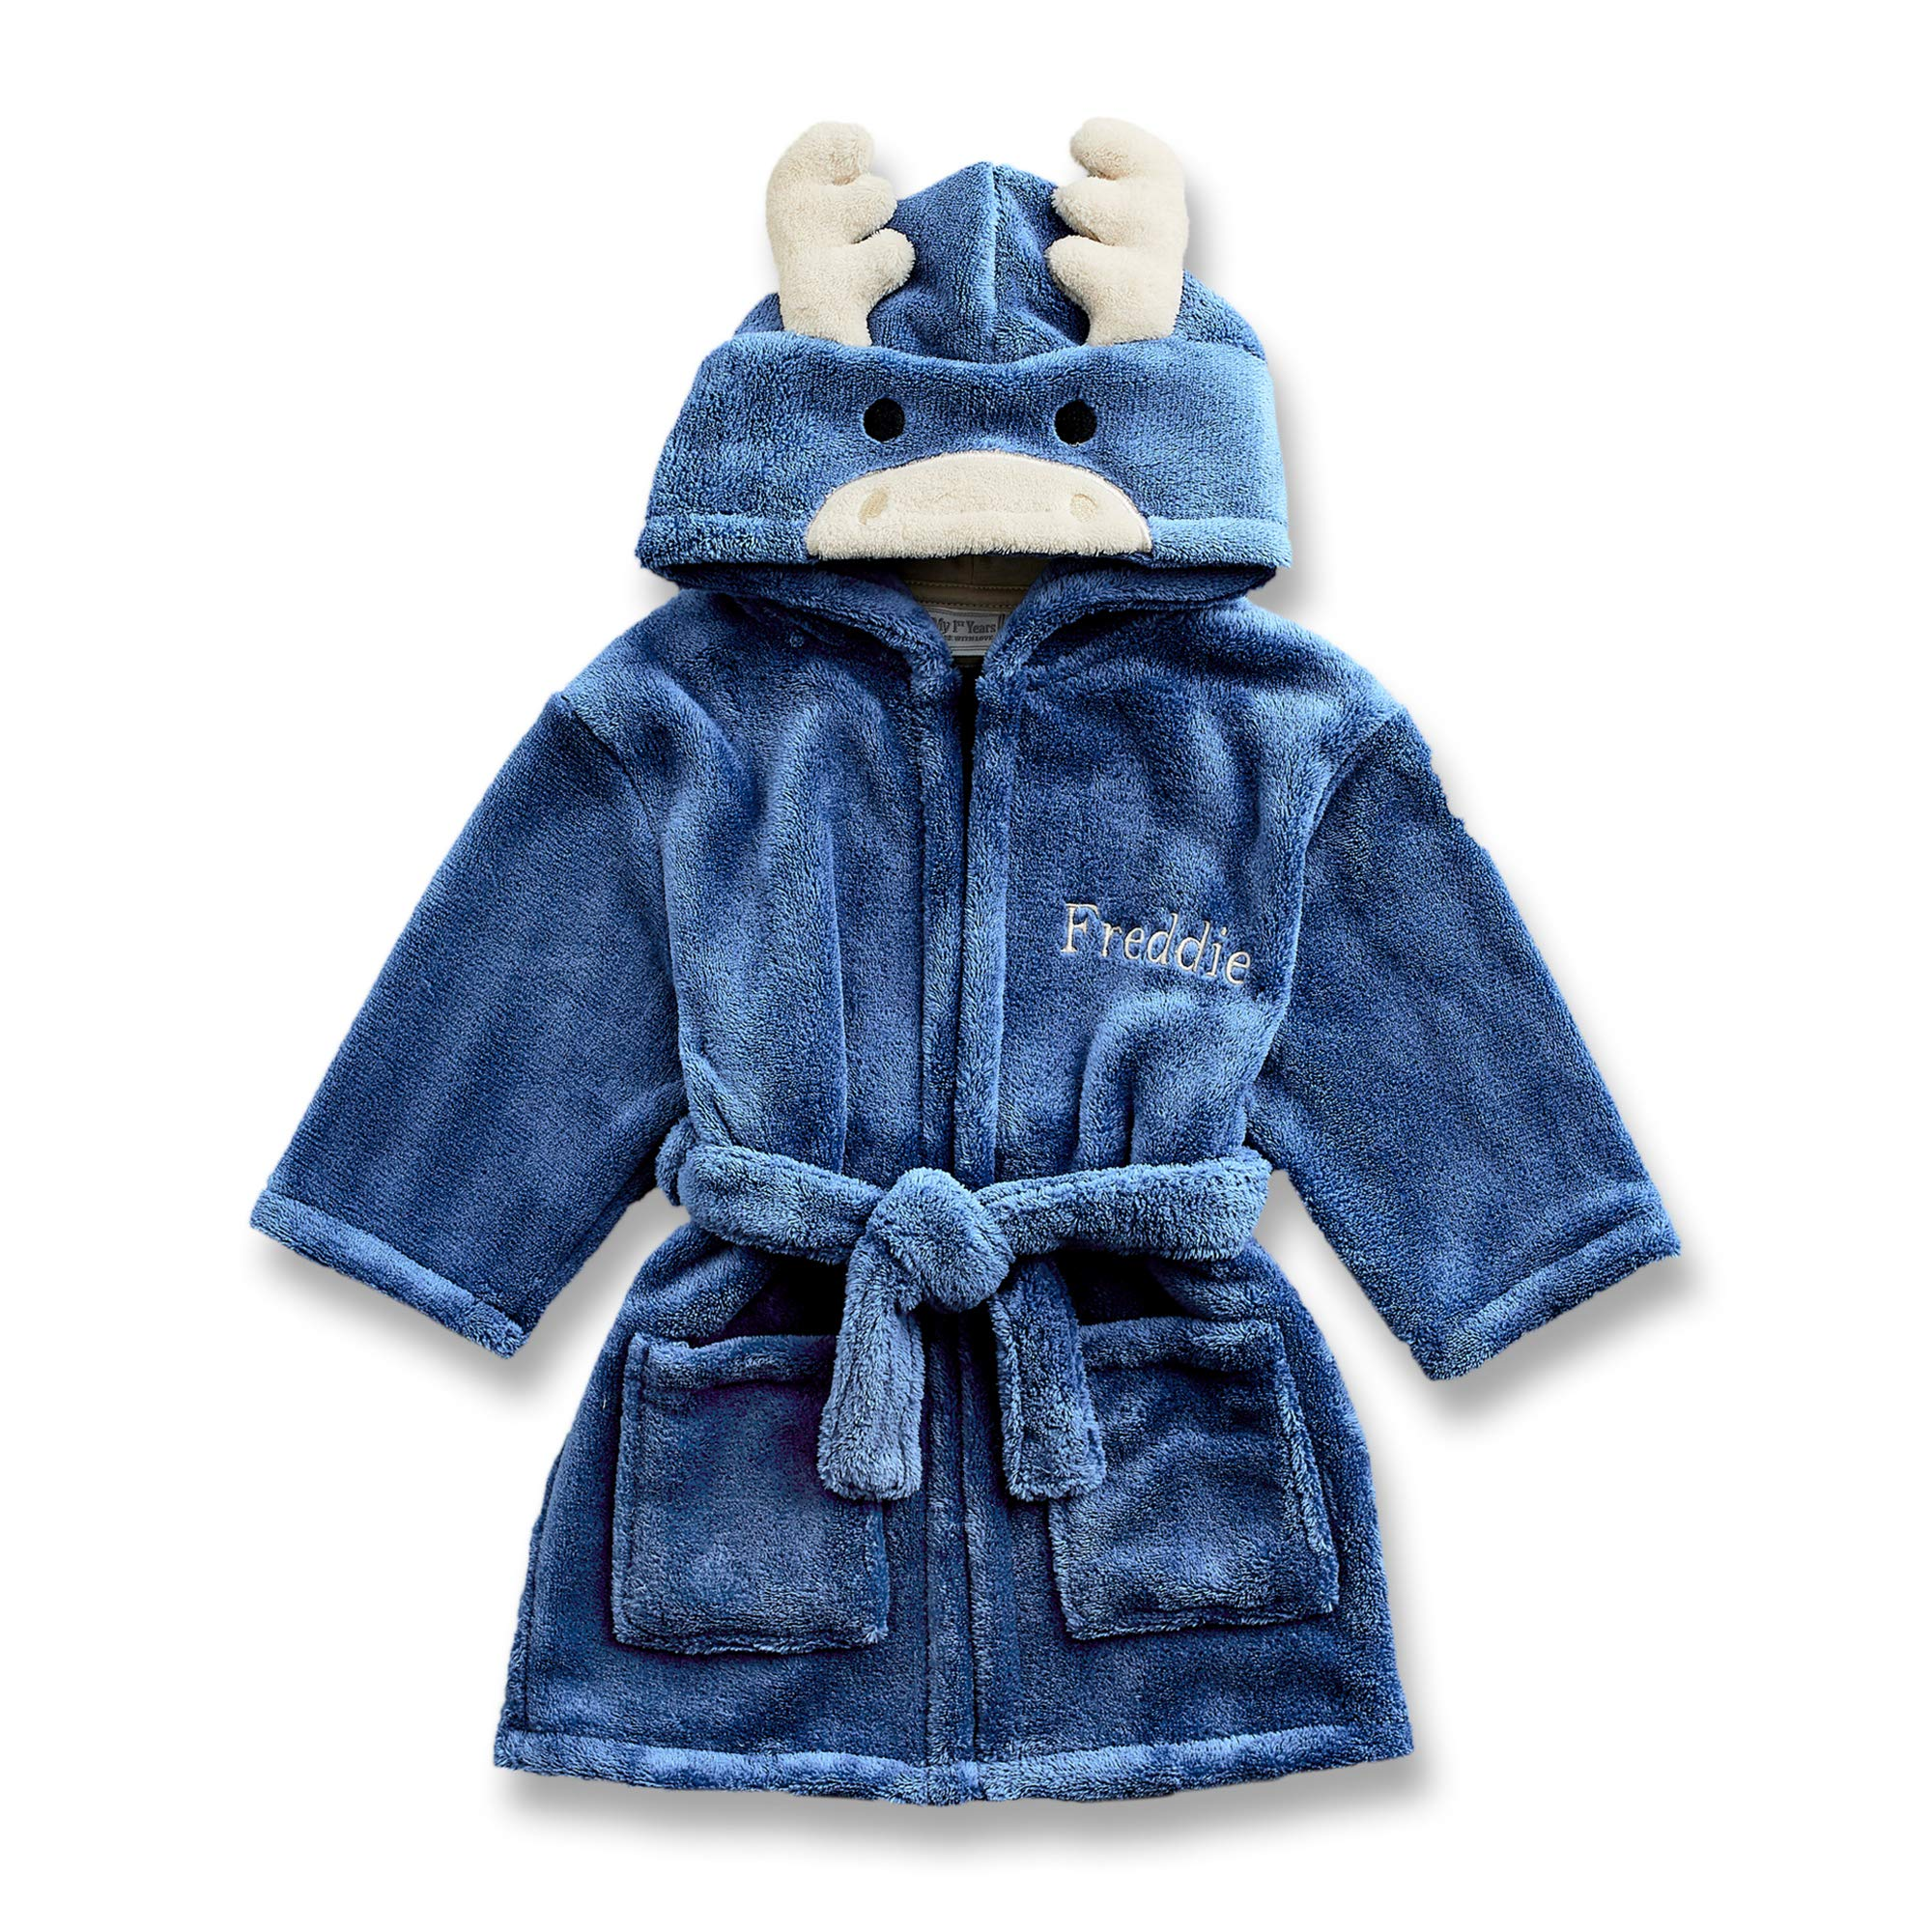 Personalized Bath Robe for Baby & Toddler - Adorable Moose Soft Hooded Animal Bathrobe for Kids - The Perfect Custom Baby Gift for Boys & Girls - Gift Box Included by MY 1ST YEARS MADE WITH LOVE